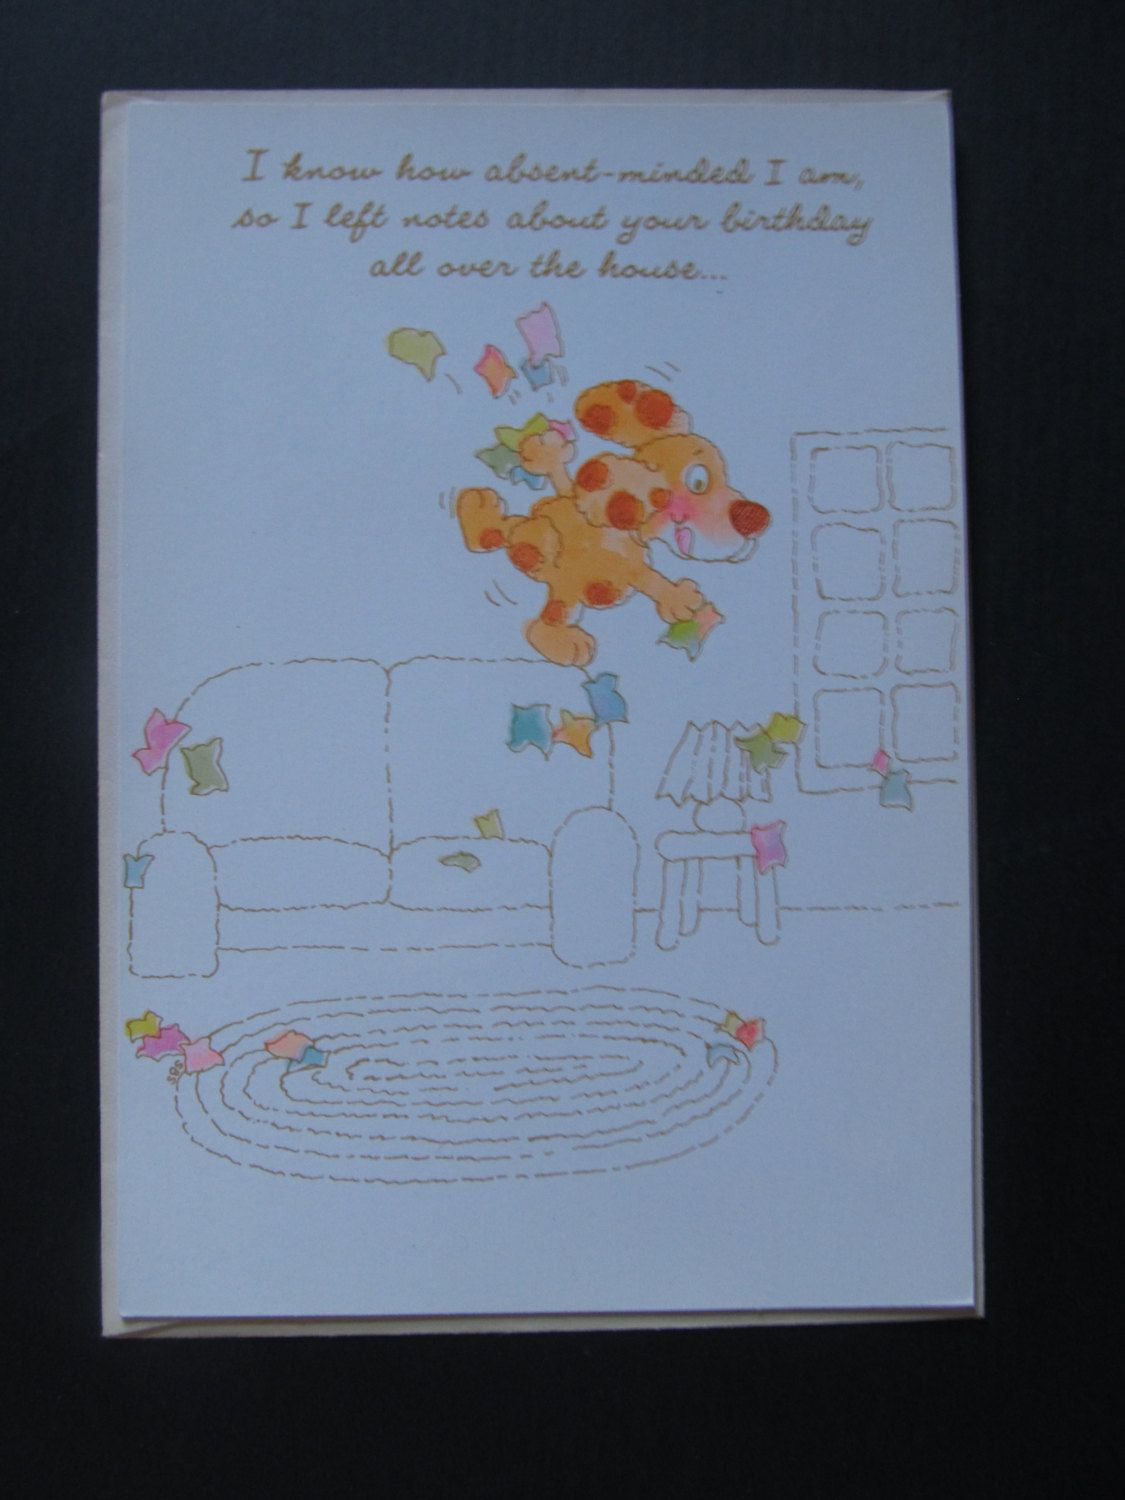 Birthday Card Late With Dog Absent Minded Late Bday Cute Sorry